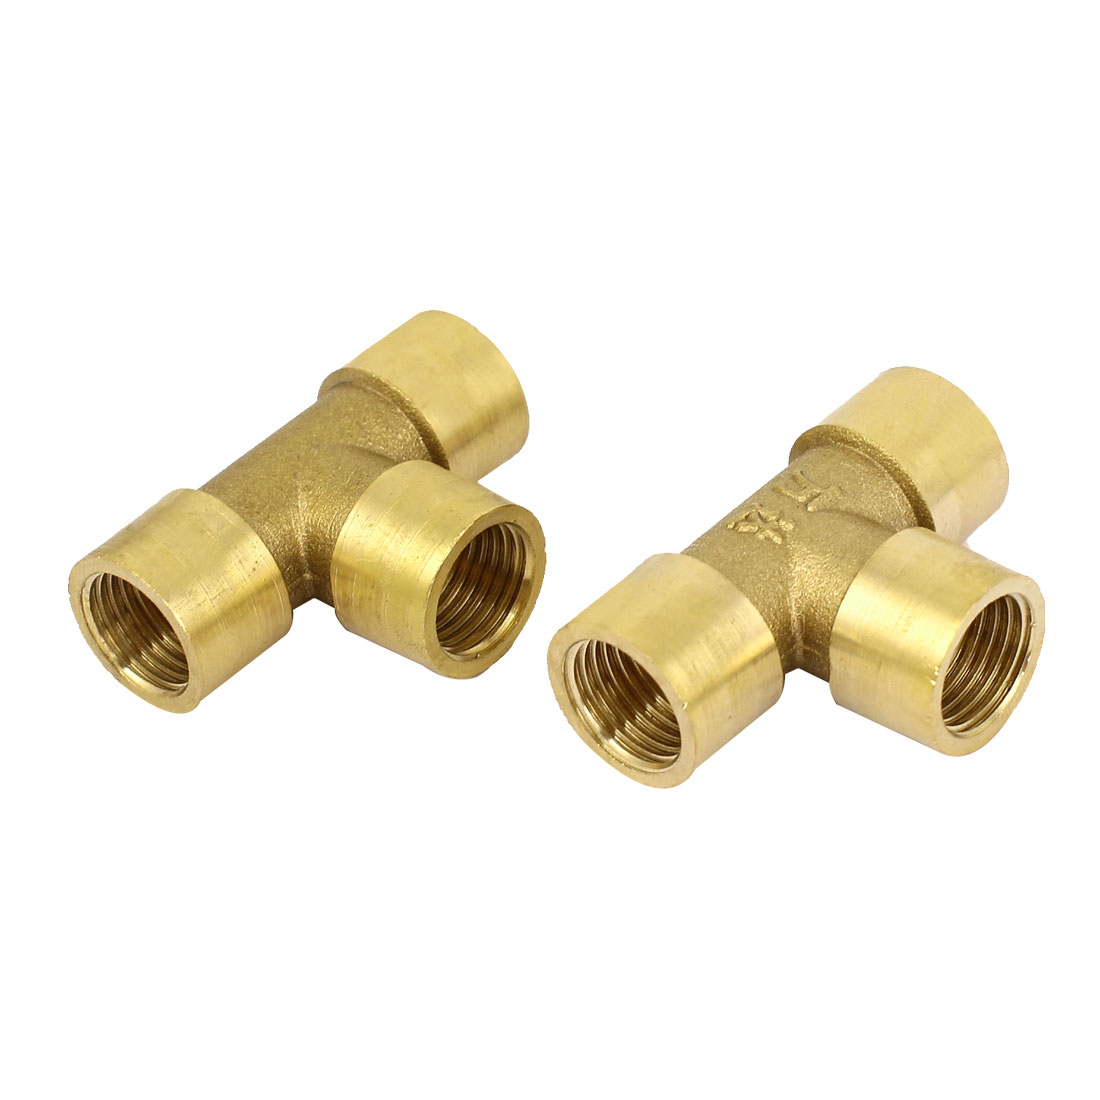 Gold Tone Air Pneumatic 13mm to 13mm Brass T-Shaped Barb Fitting Connector 2pcs